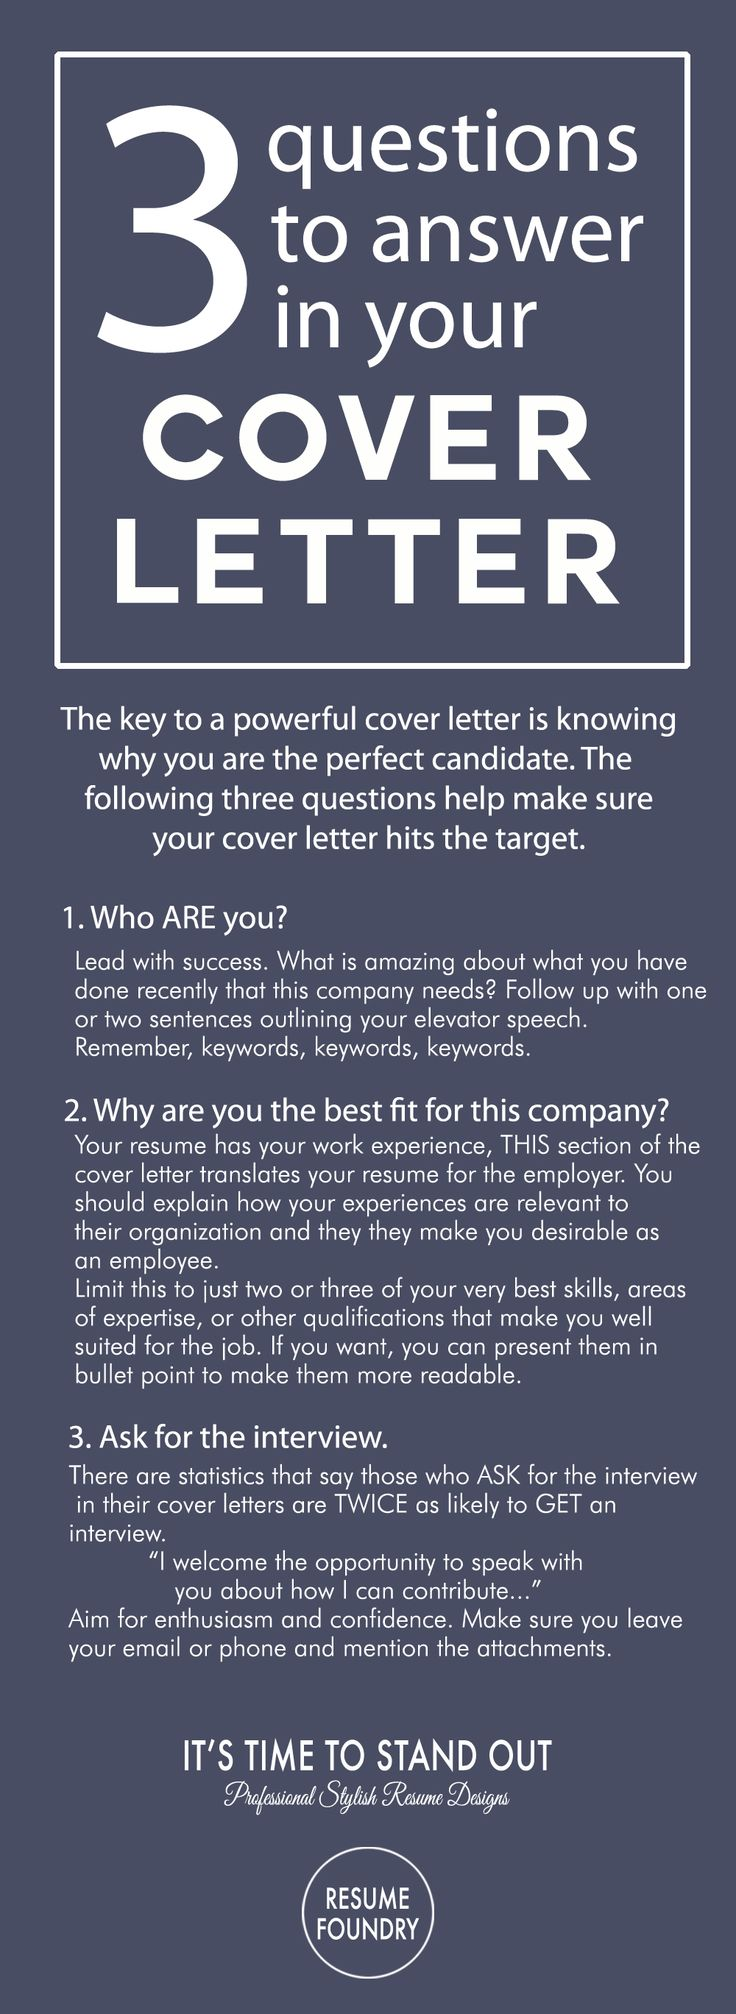 25 unique cover letters ideas on pinterest cover letter tips cover letter tips outline how to write a cover letter madrichimfo Gallery